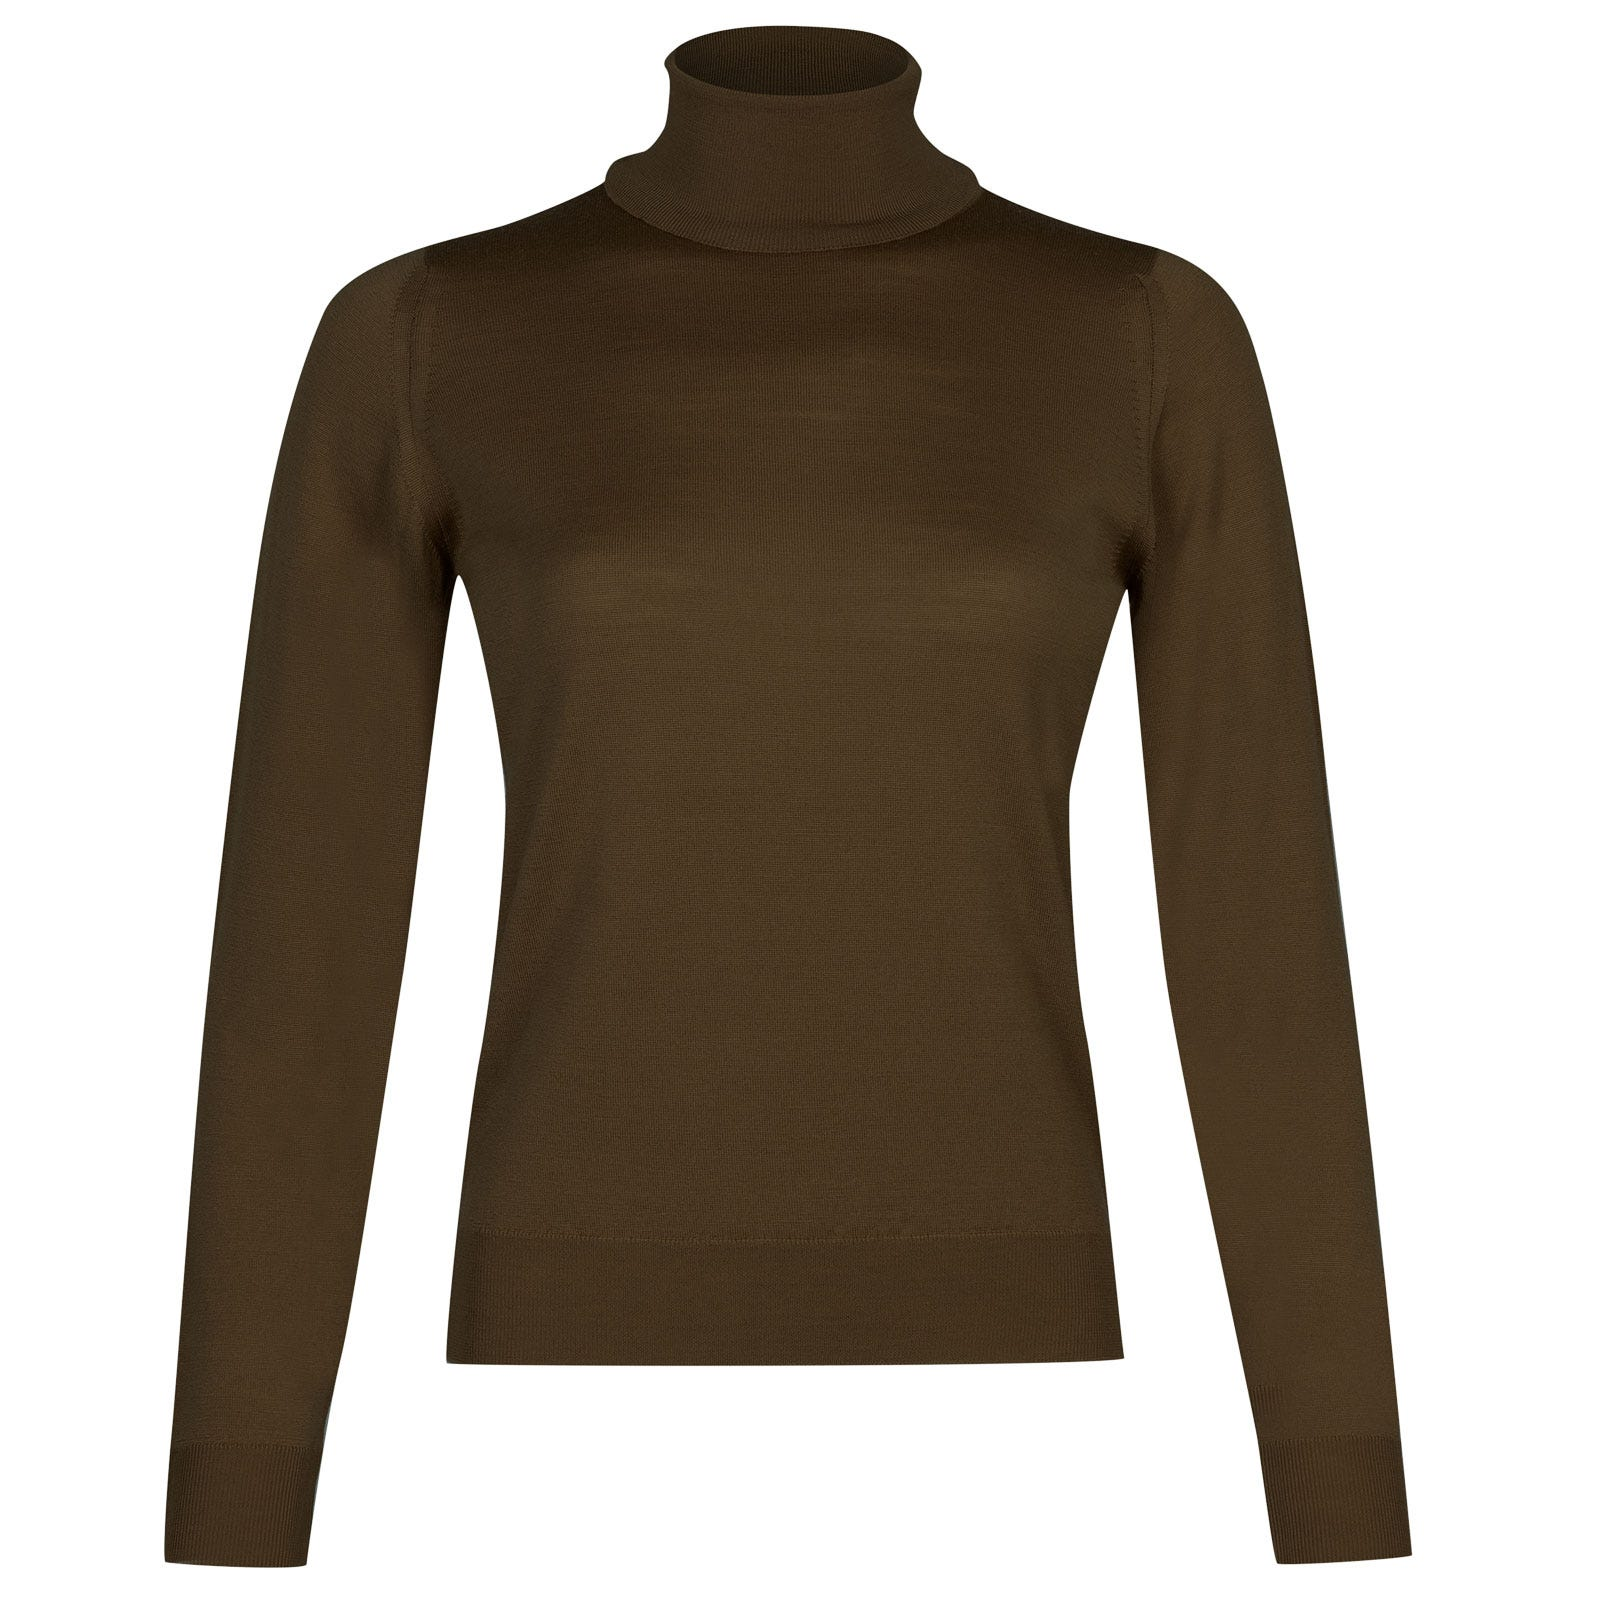 John Smedley siena Merino Wool Sweater in Kielder Green-L